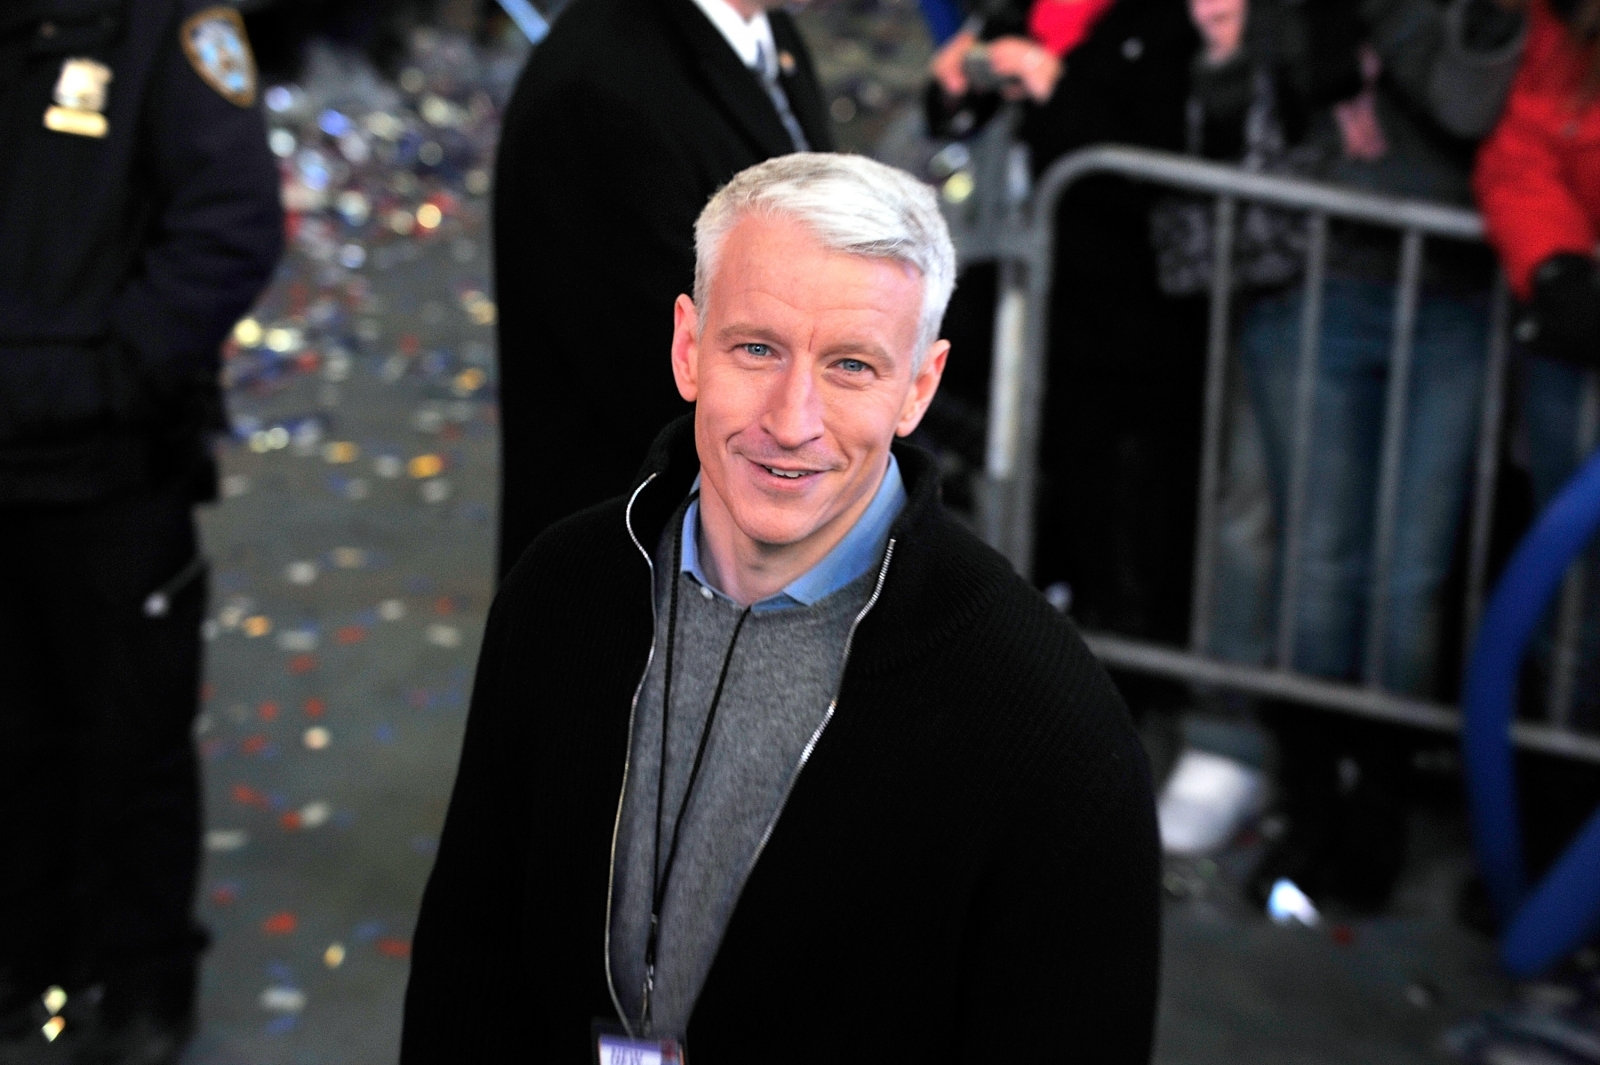 Anderson Cooper's Trump tweet result of someone stealing phone